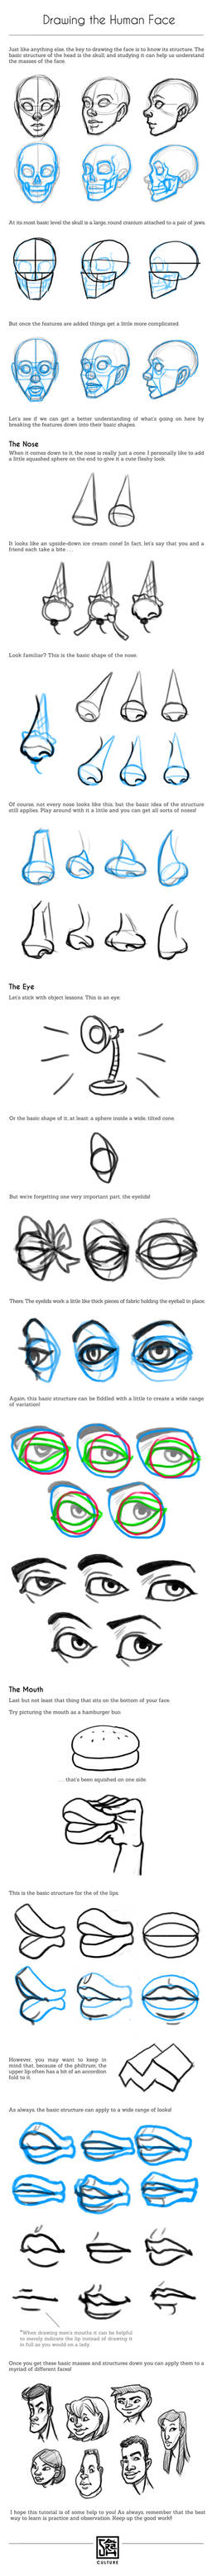 Drawing the Human Face Tutorial